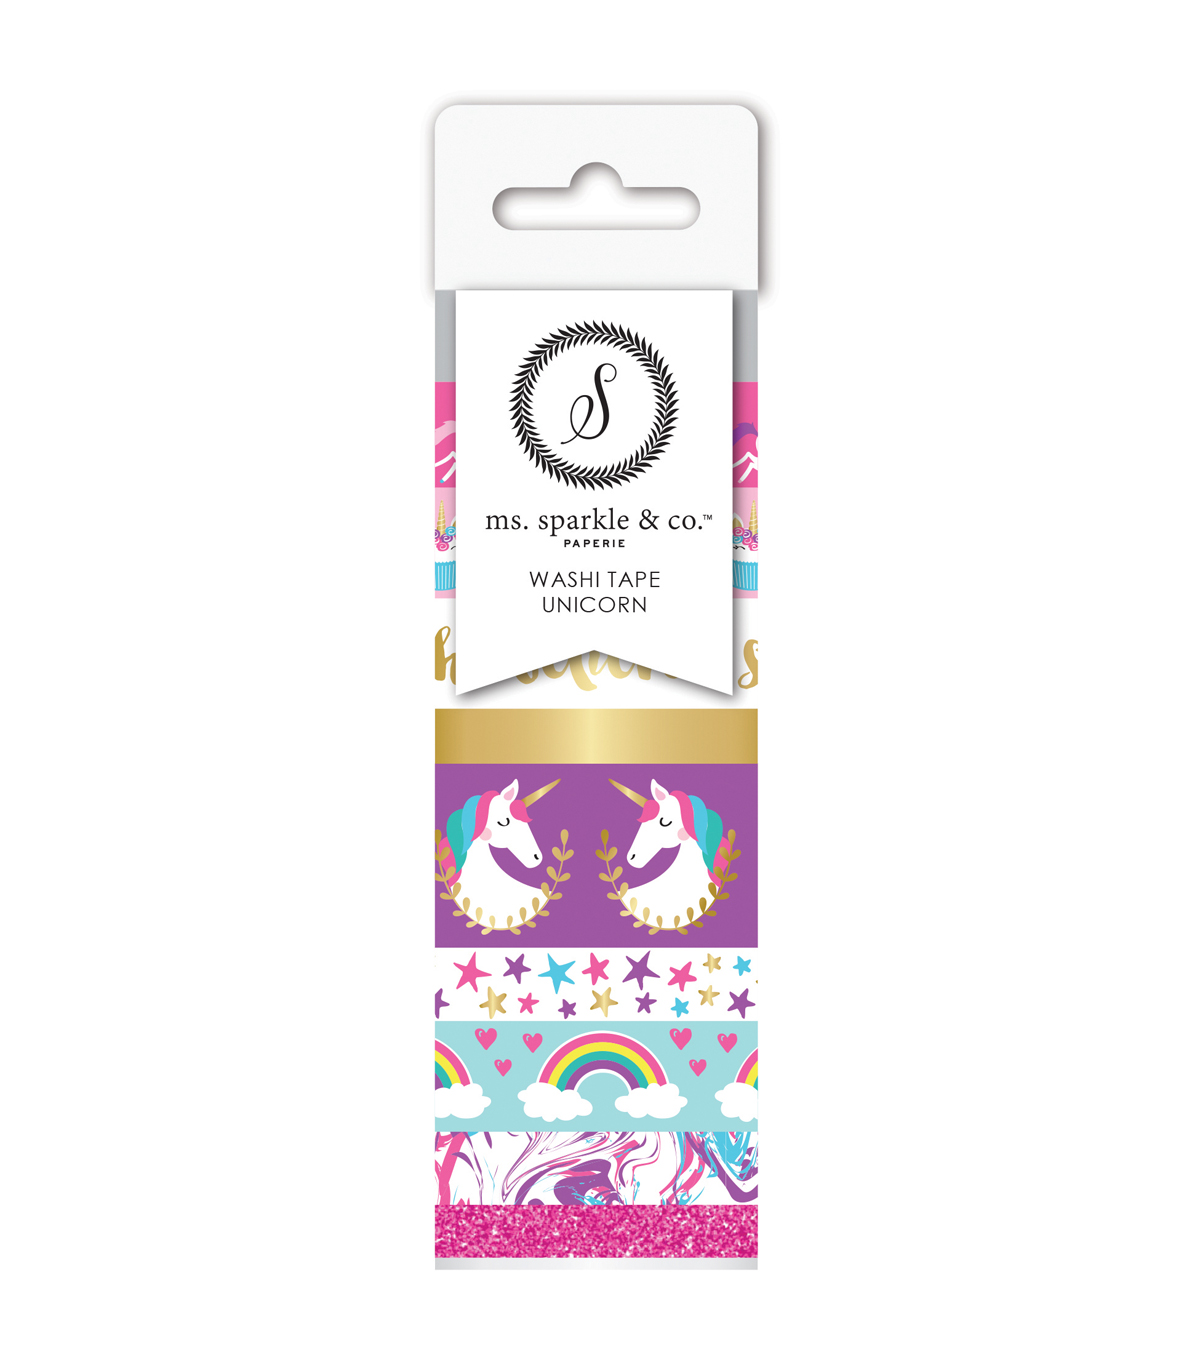 Ms. Sparkle & Co. 9 pk Washi Tapes-Unicorn